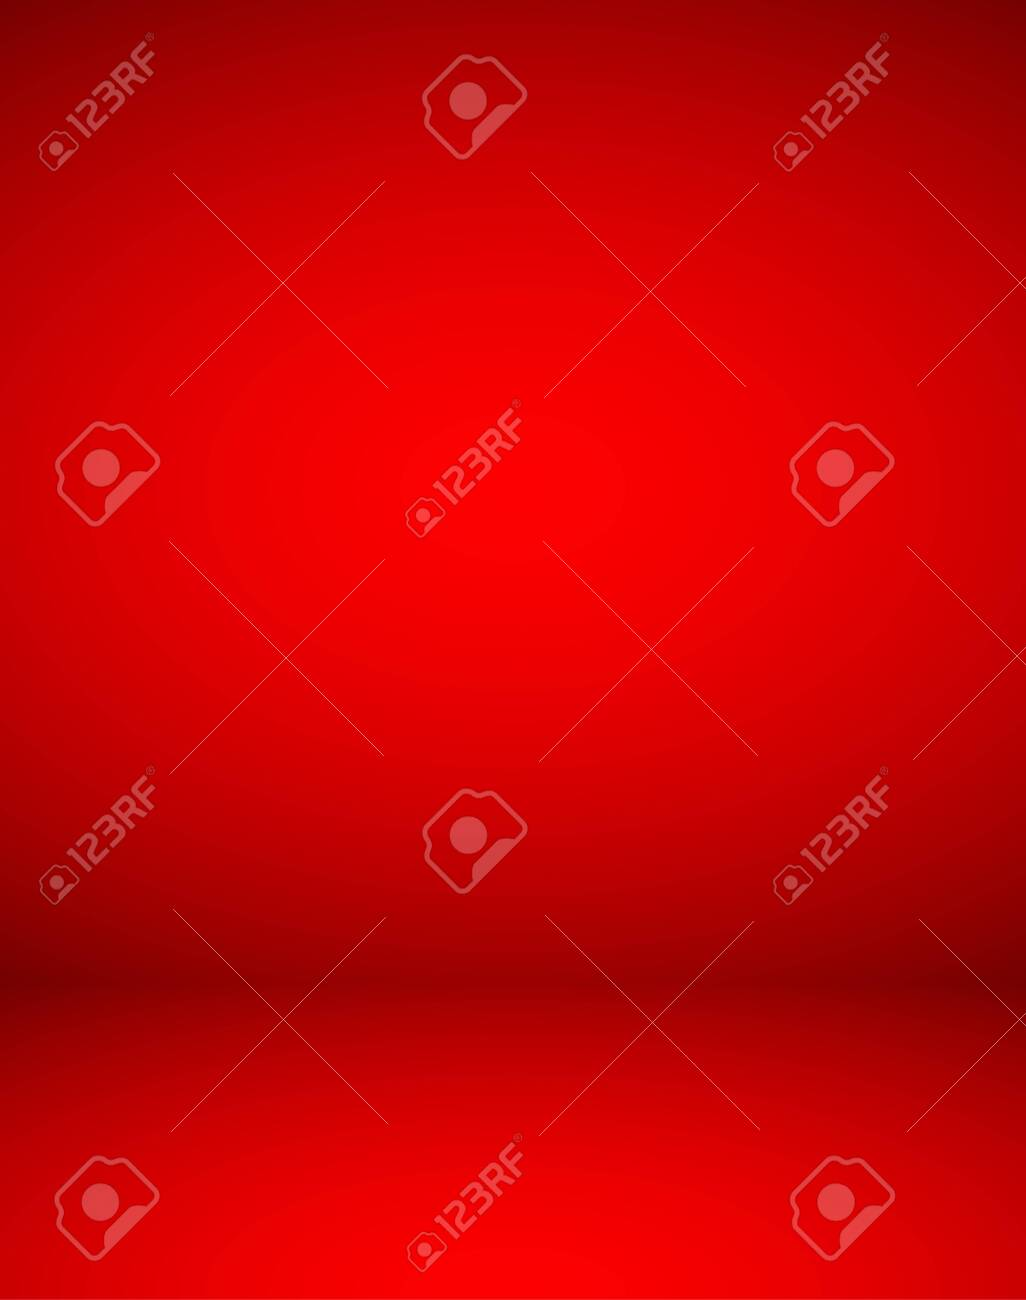 Empty red color studio room luxury background. Abstract gradient red, used as background for display products design web template, Vector illustration - 148497815